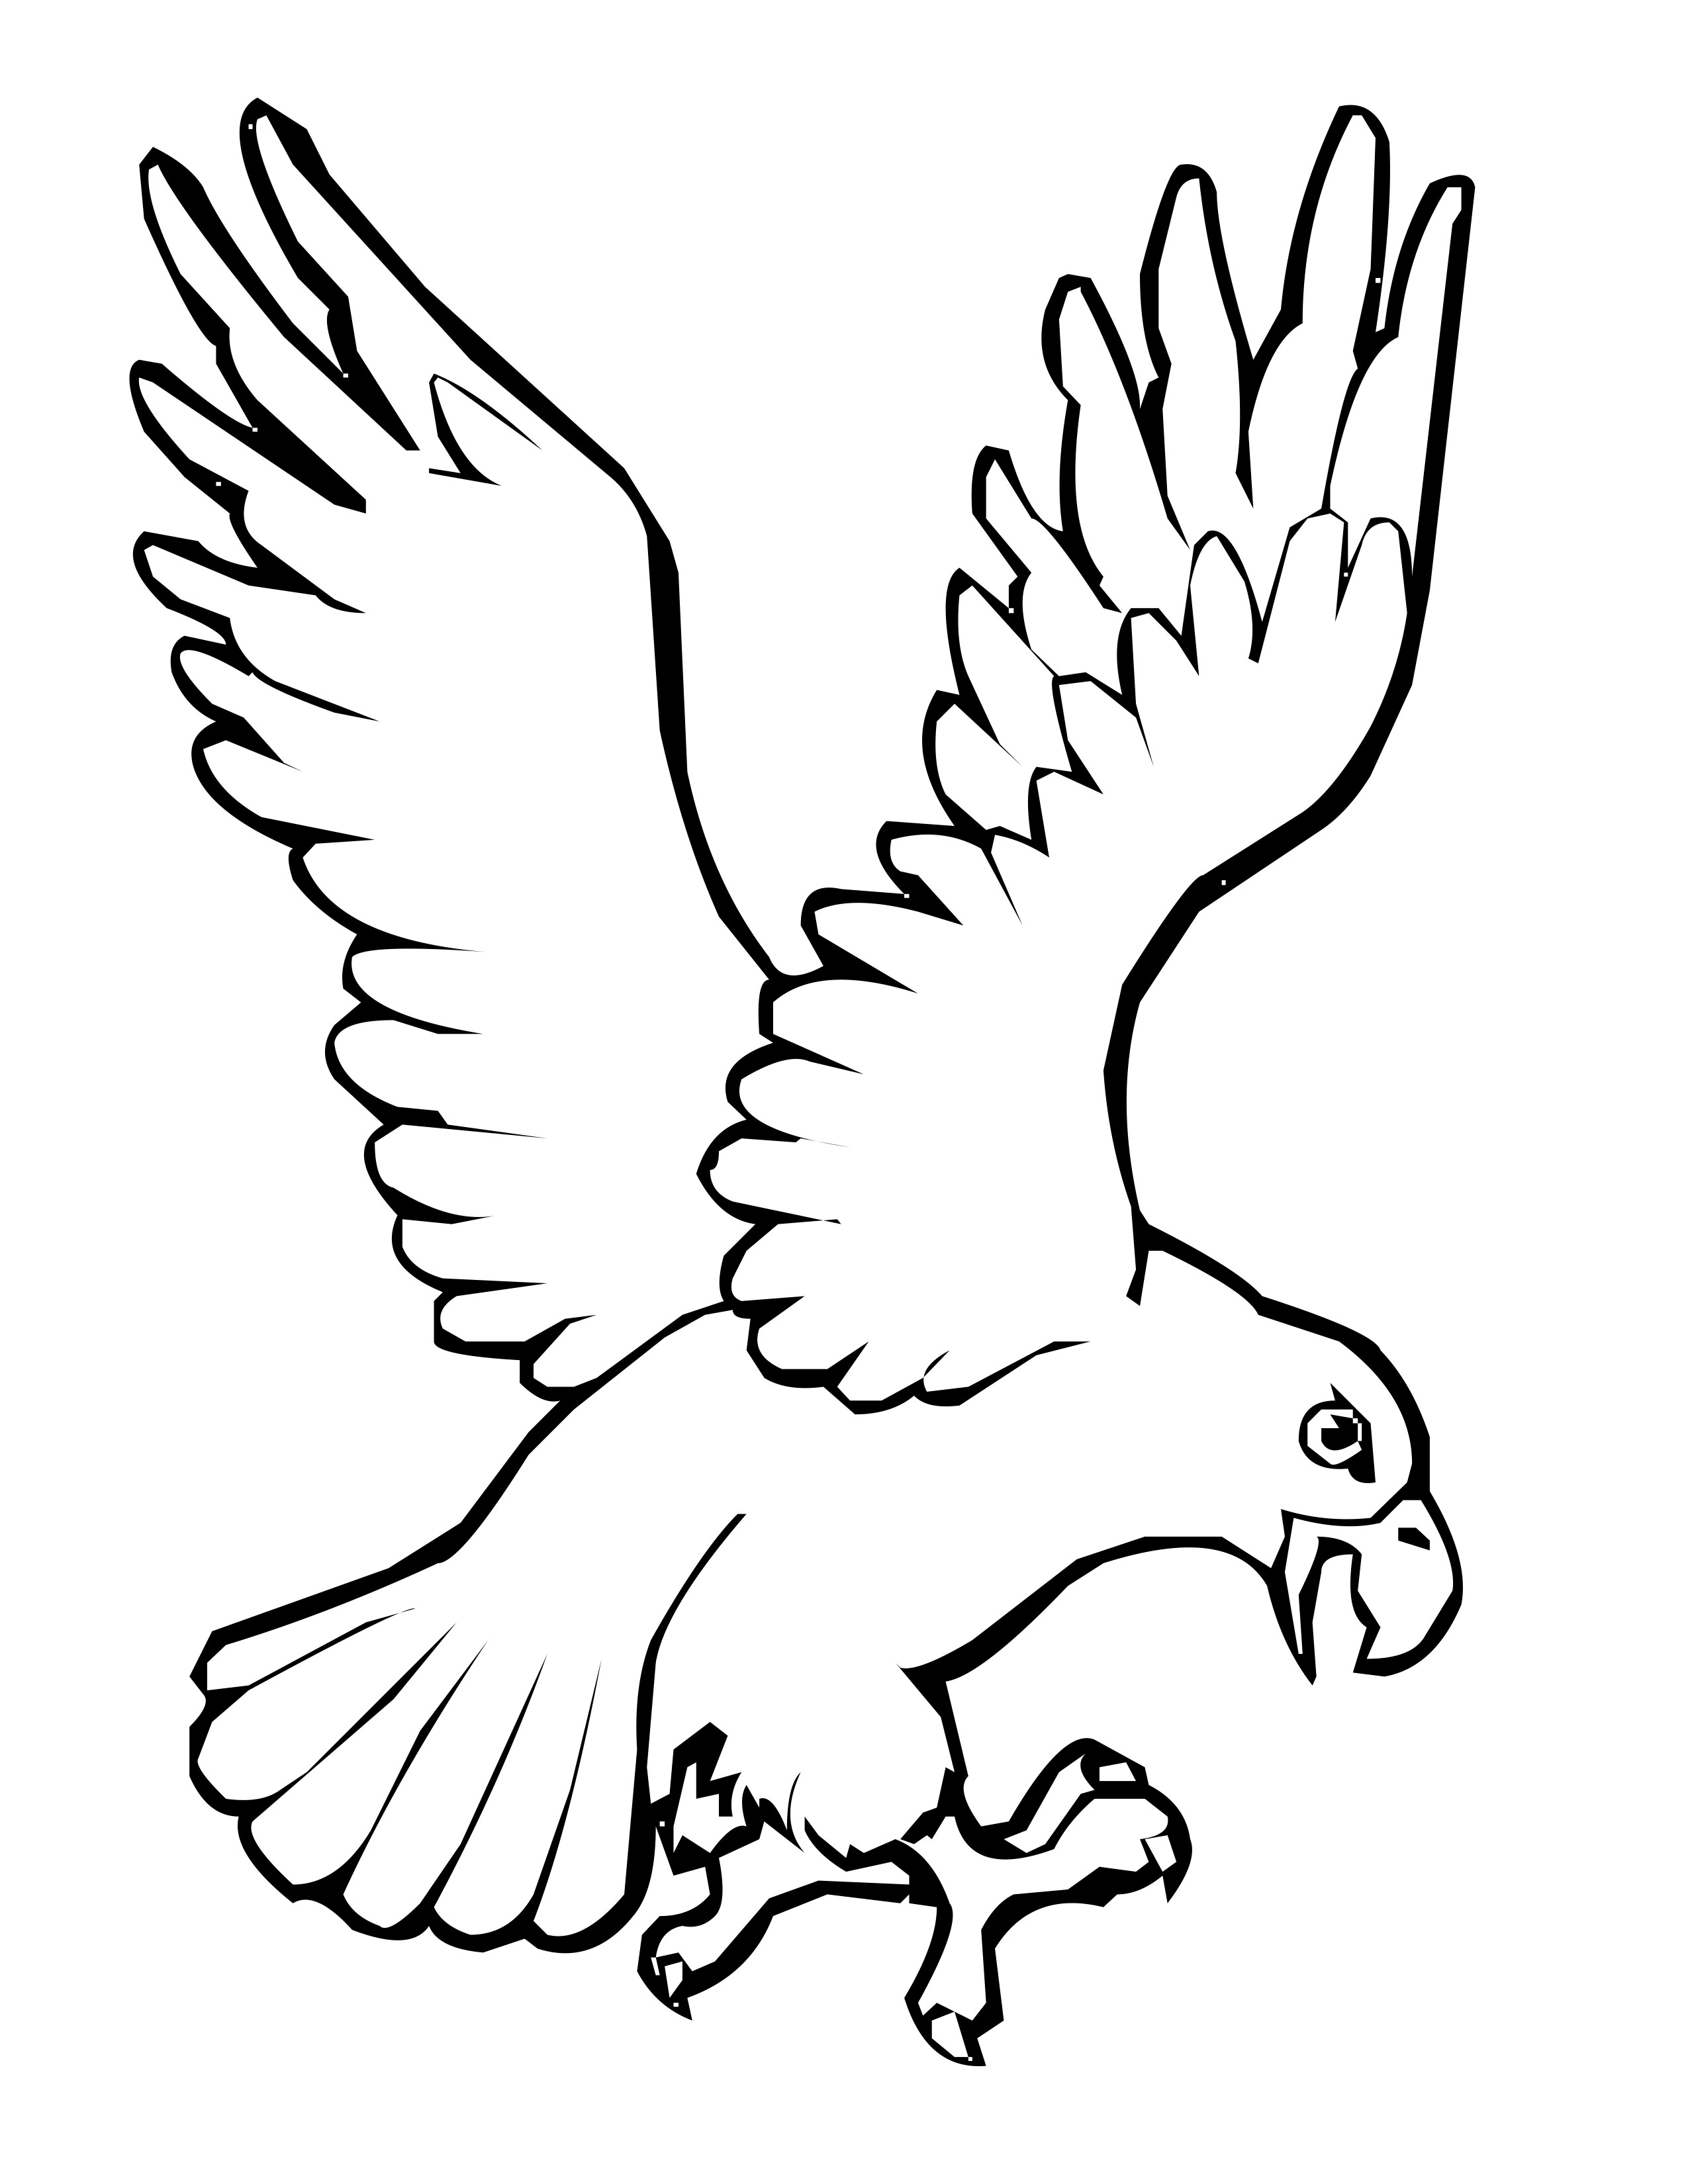 coloring pages of birds birds free to color for children birds kids coloring pages of coloring birds pages